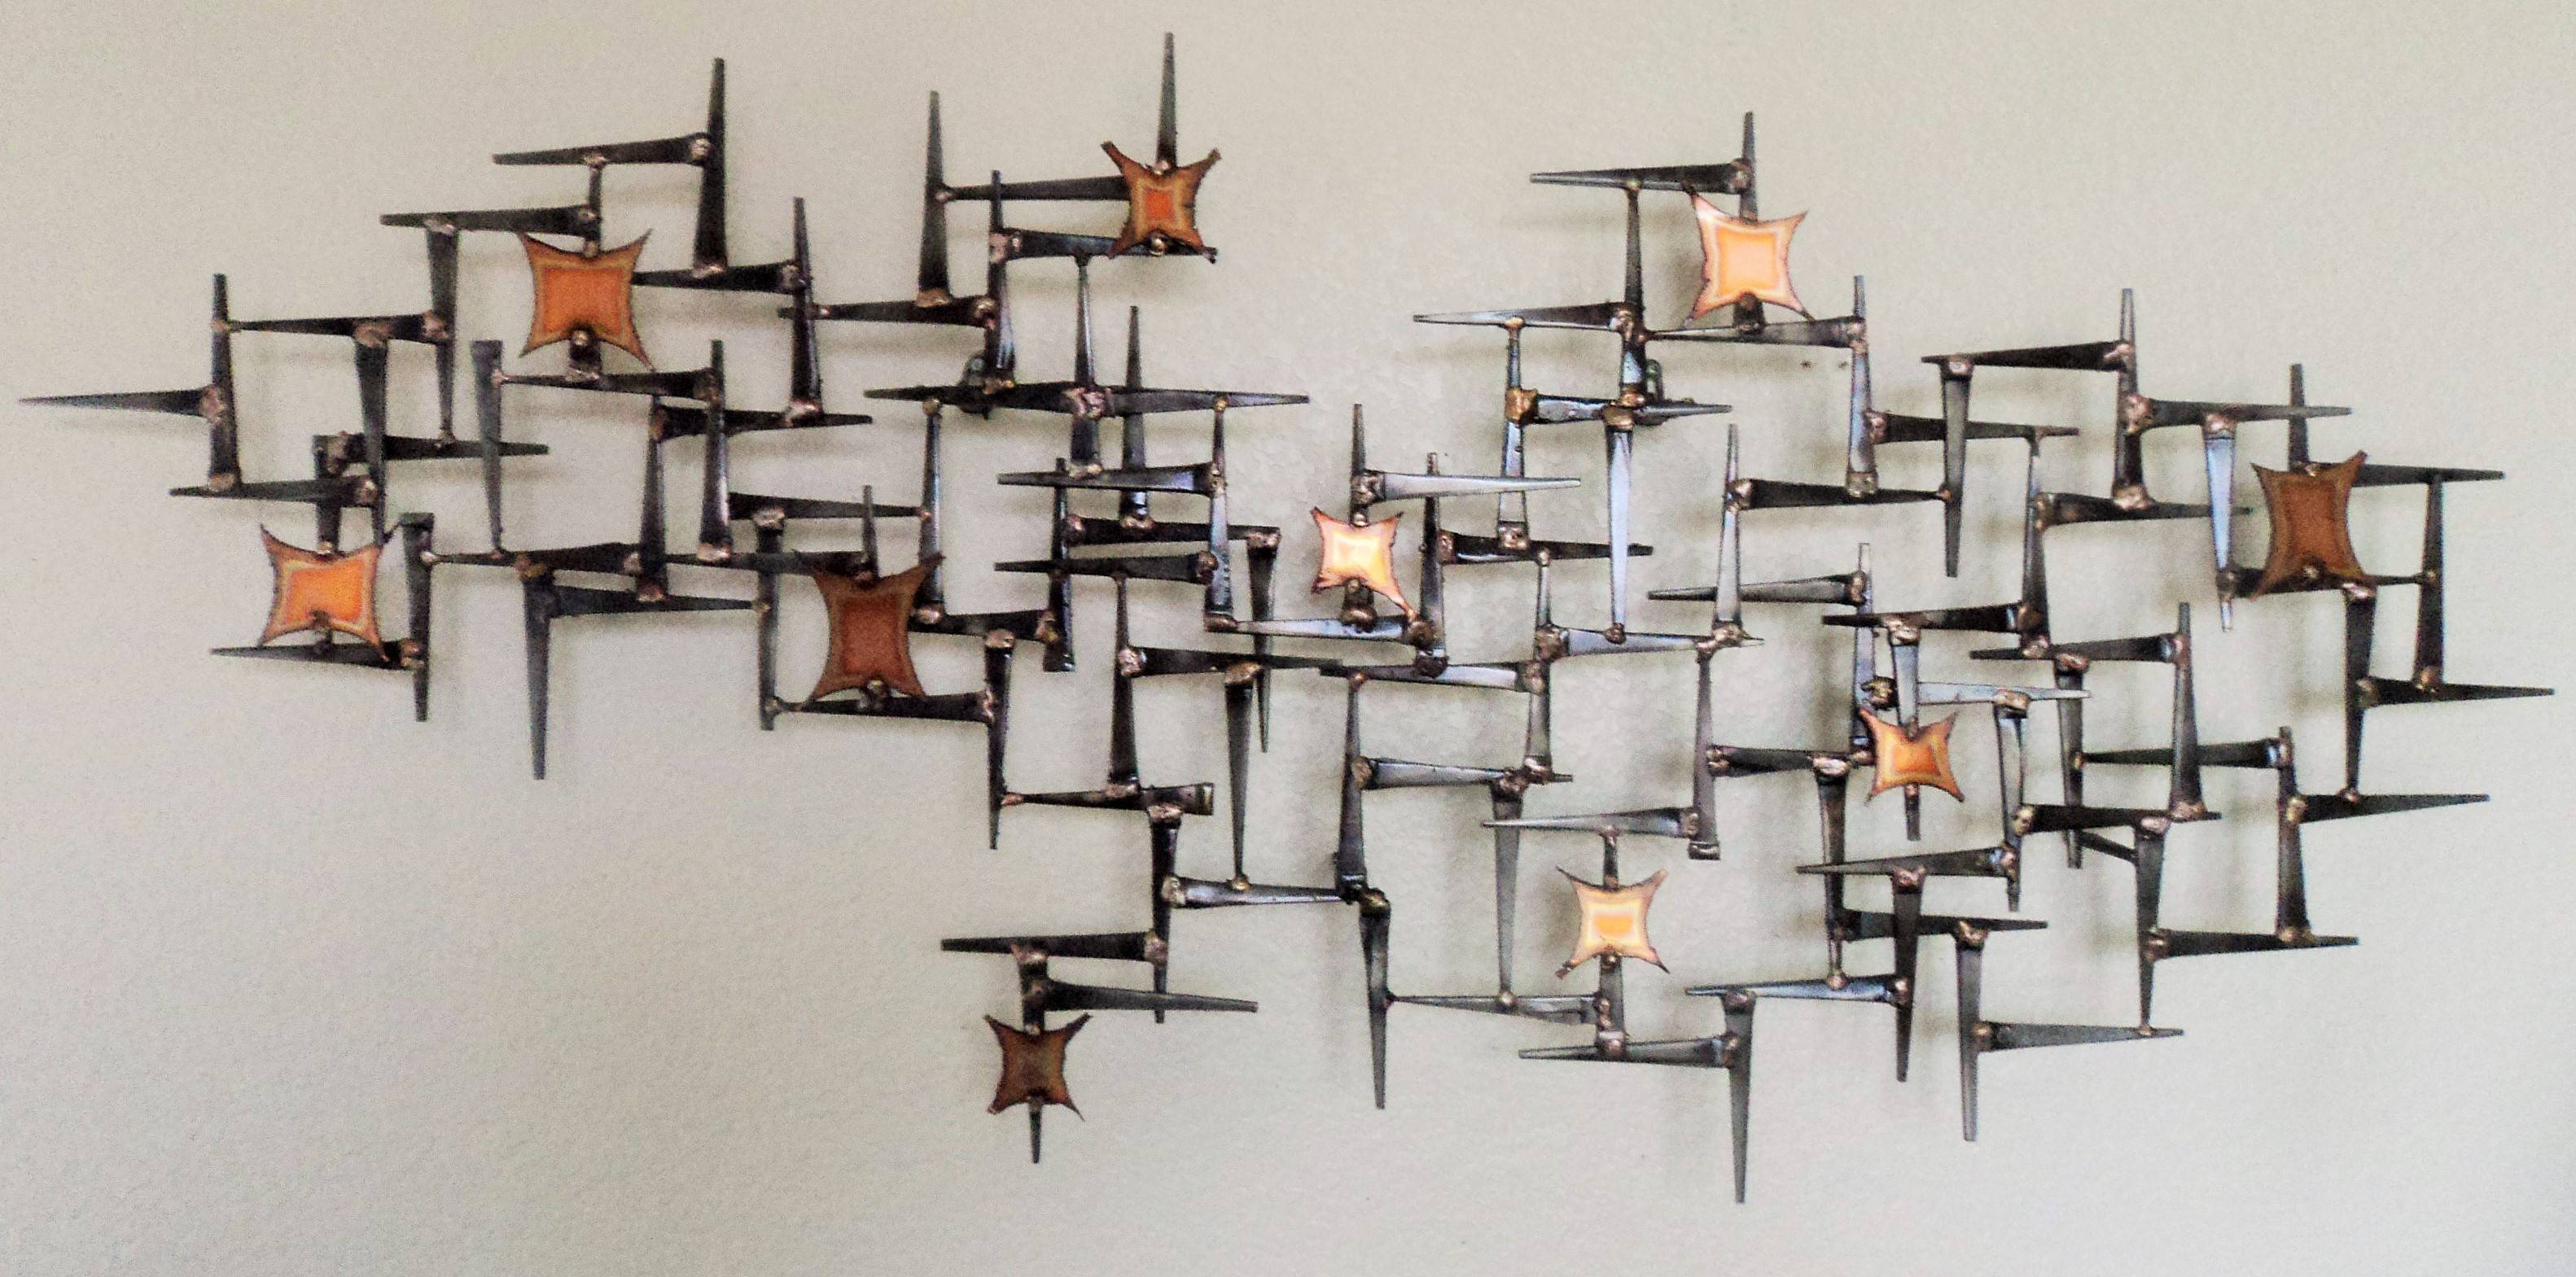 Mid Century Modern Wall Art Sculpture | Best Wall Art 2018 With Regard To Most Recently Released Mid Century Modern Metal Wall Art (Gallery 18 of 20)